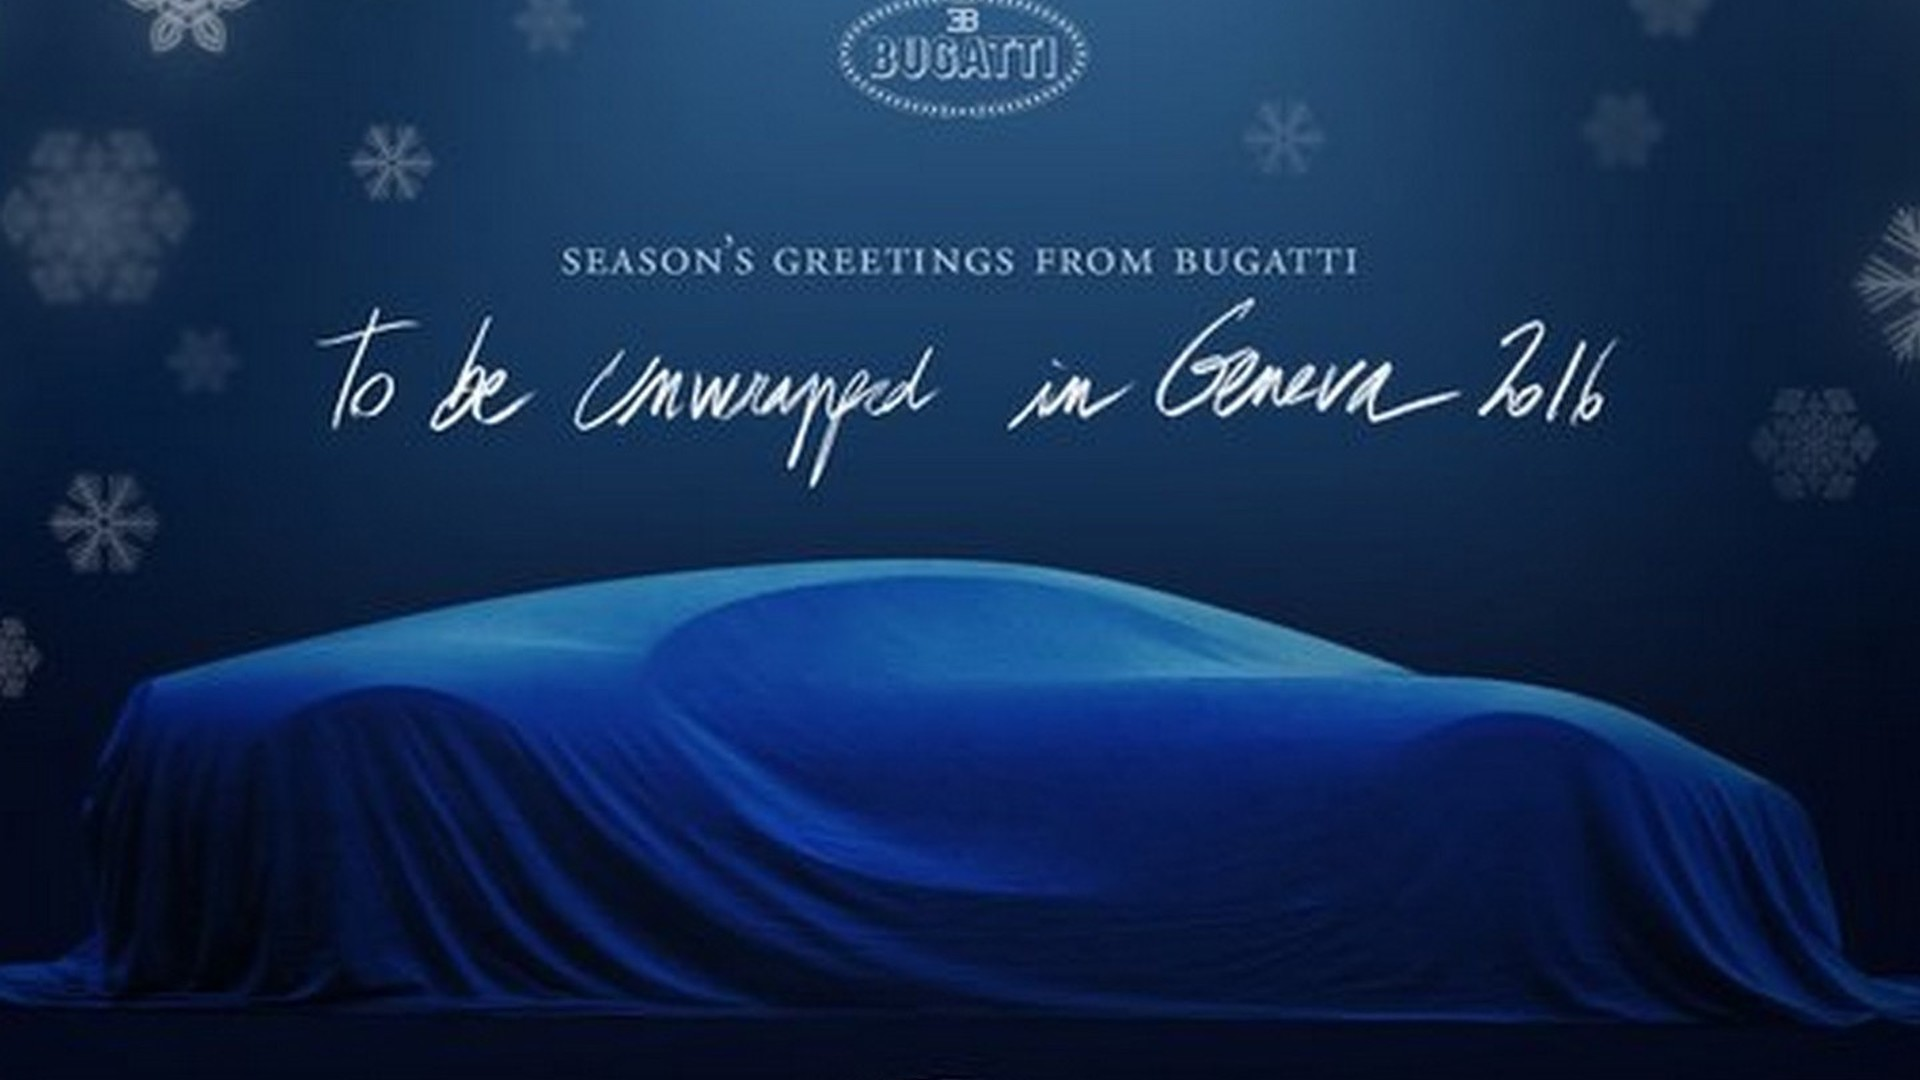 Bugatti Chiron believed to have 290 mph / 467 kph top speed